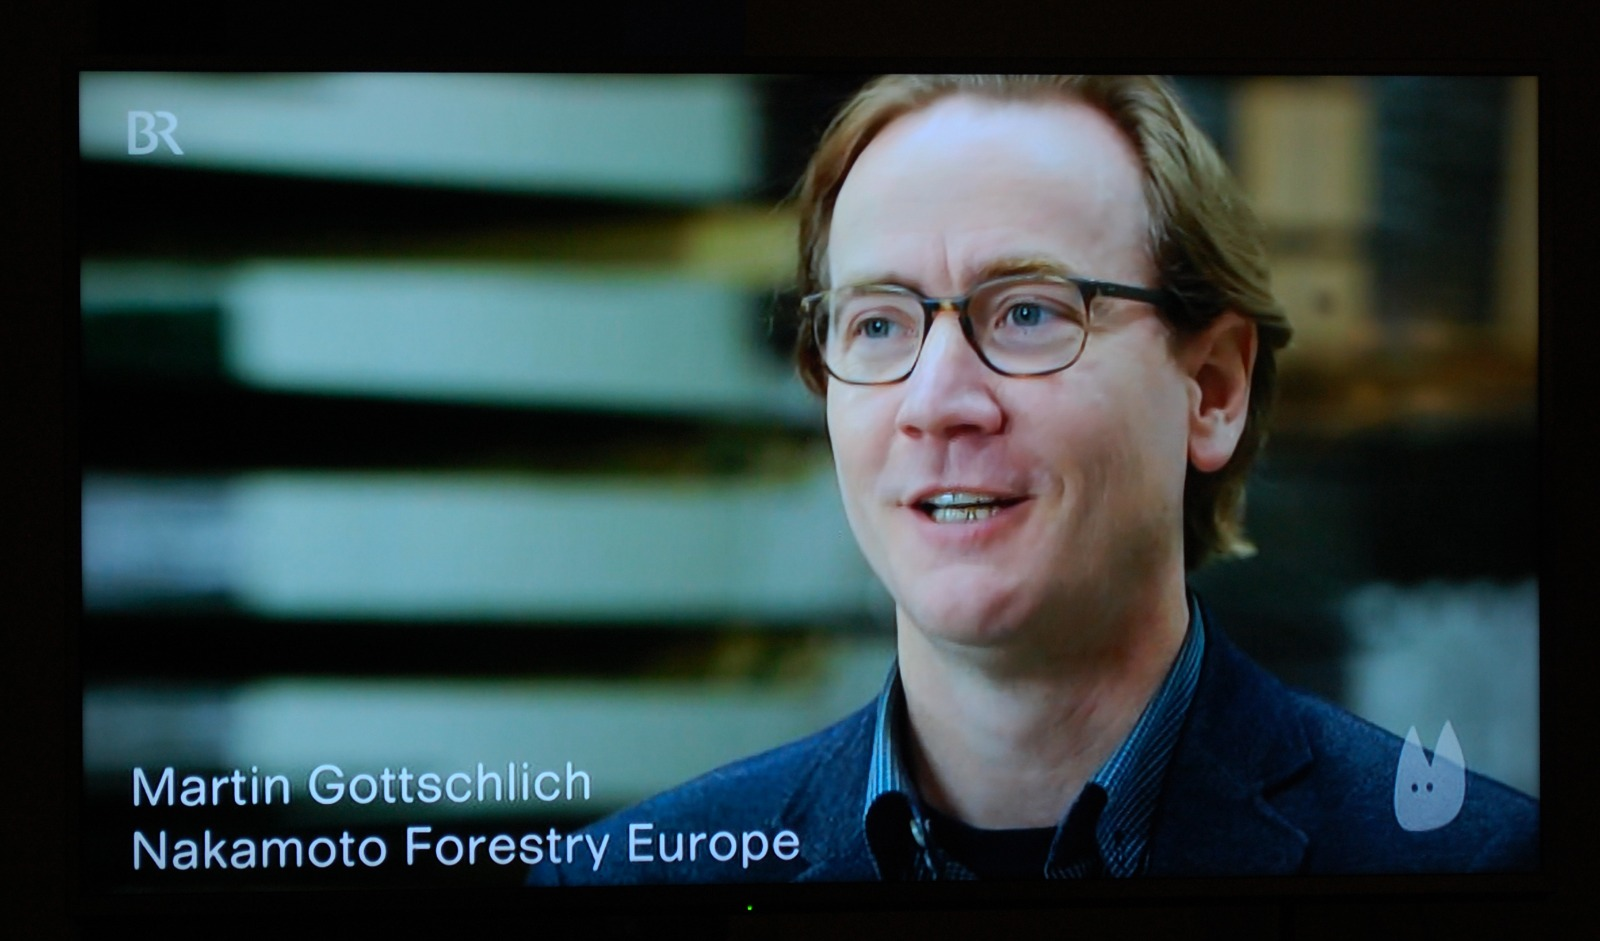 Picture of Martin Gottschlich of Nakamoto Forestry Europe